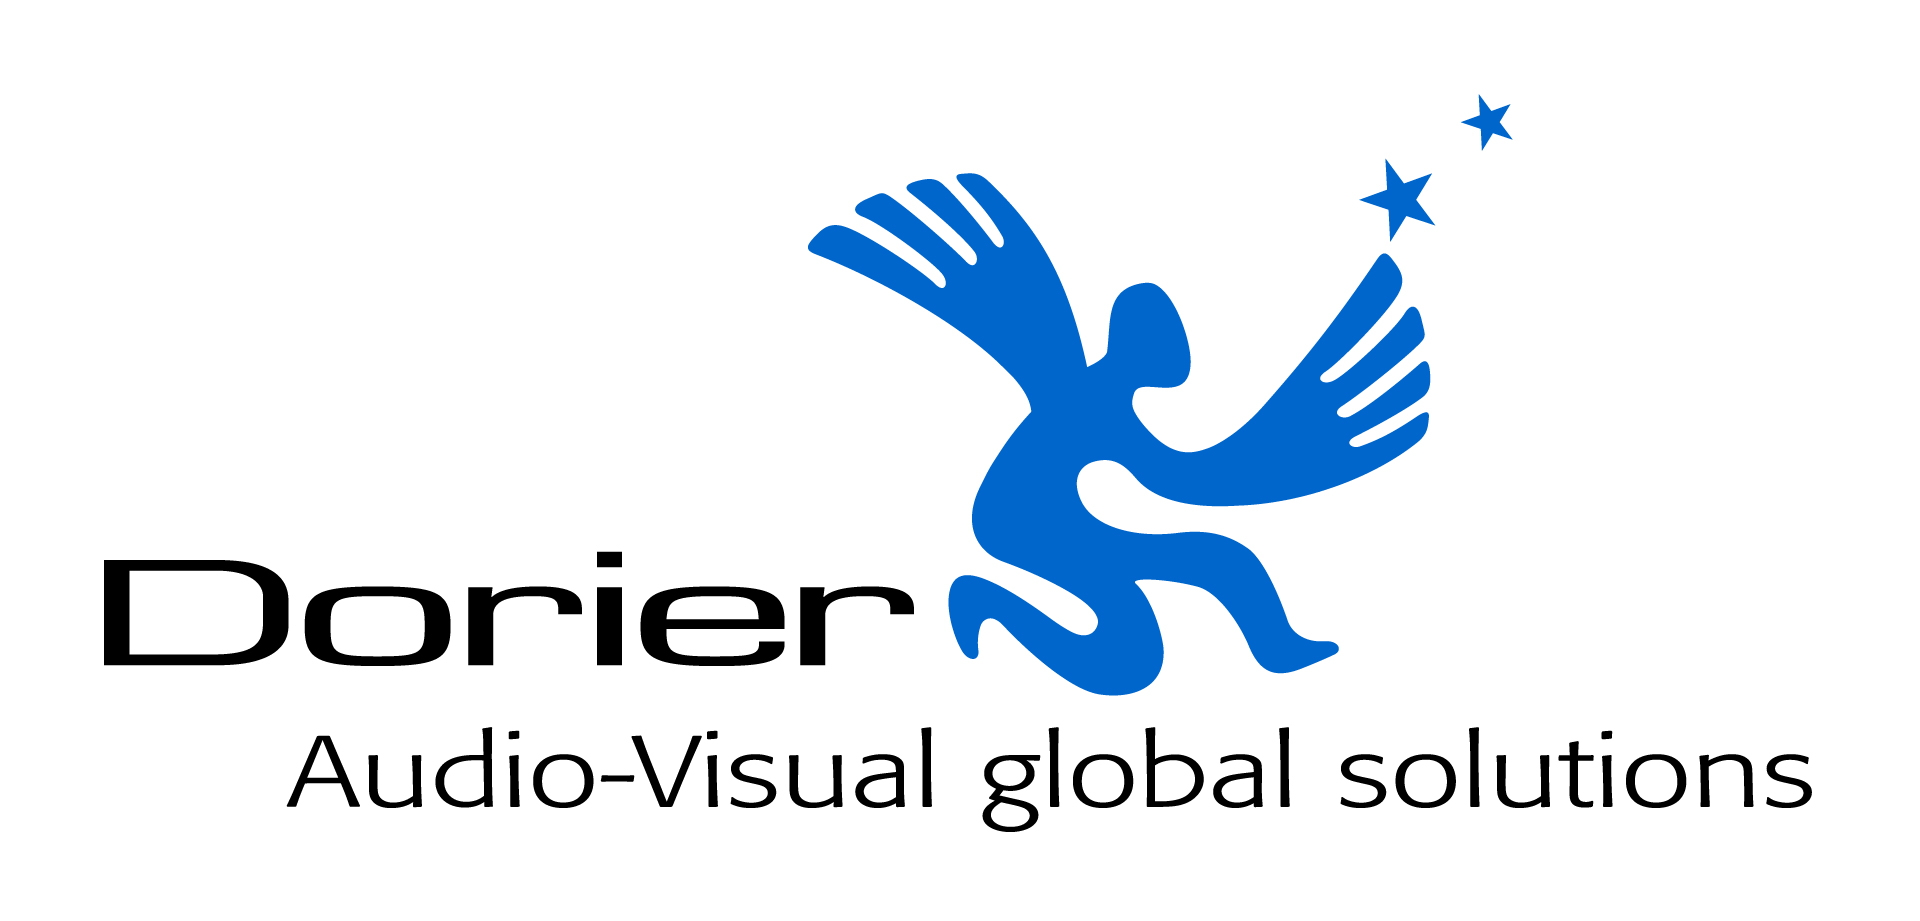 Dorier-Logo-For-Light-Background